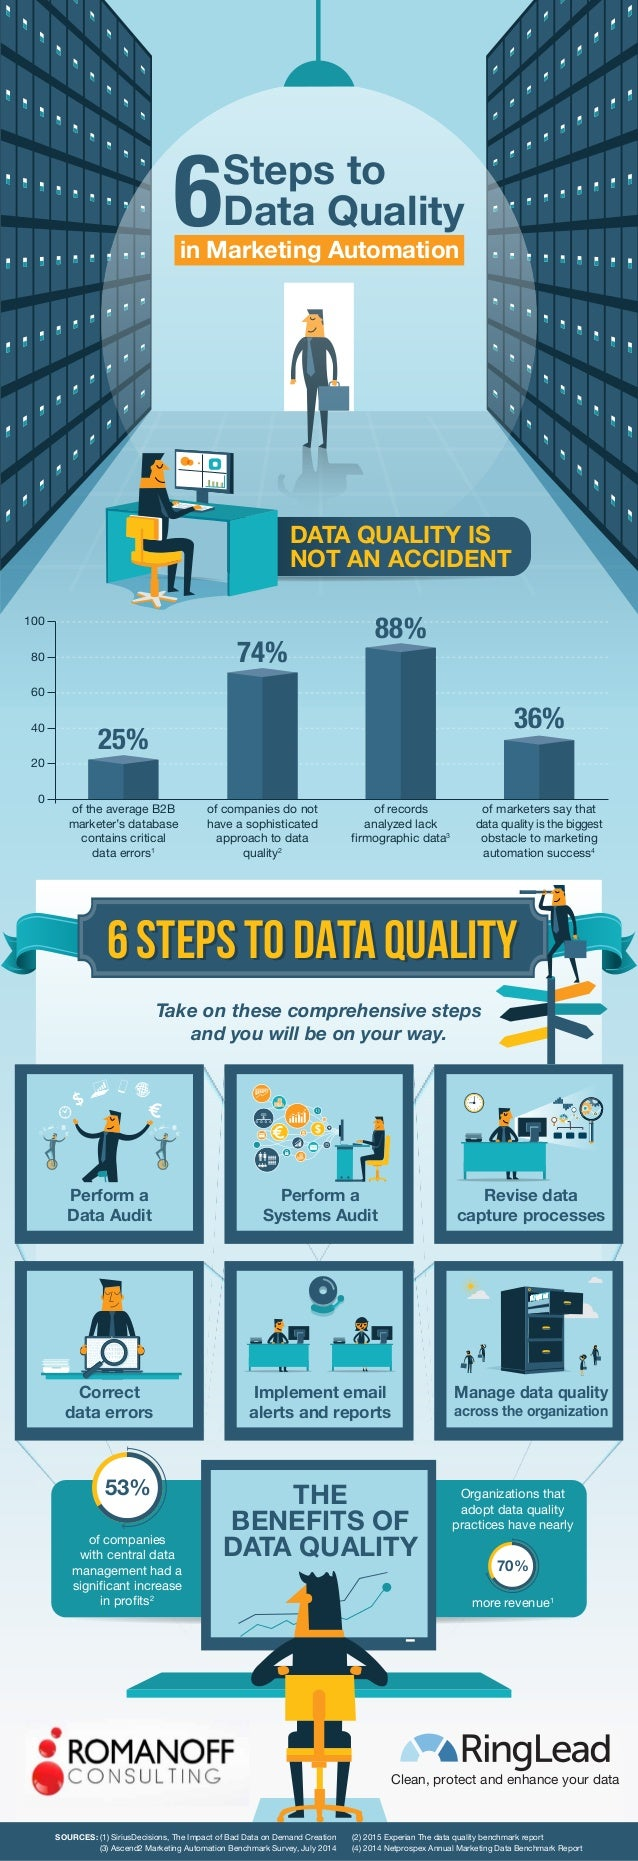 6 STEPS TO DATA QUALITY6 STEPS TO DATA QUALITY 0 20 40 60 80 100 25% 74% 88% 36% of the average B2B marketer's database co...